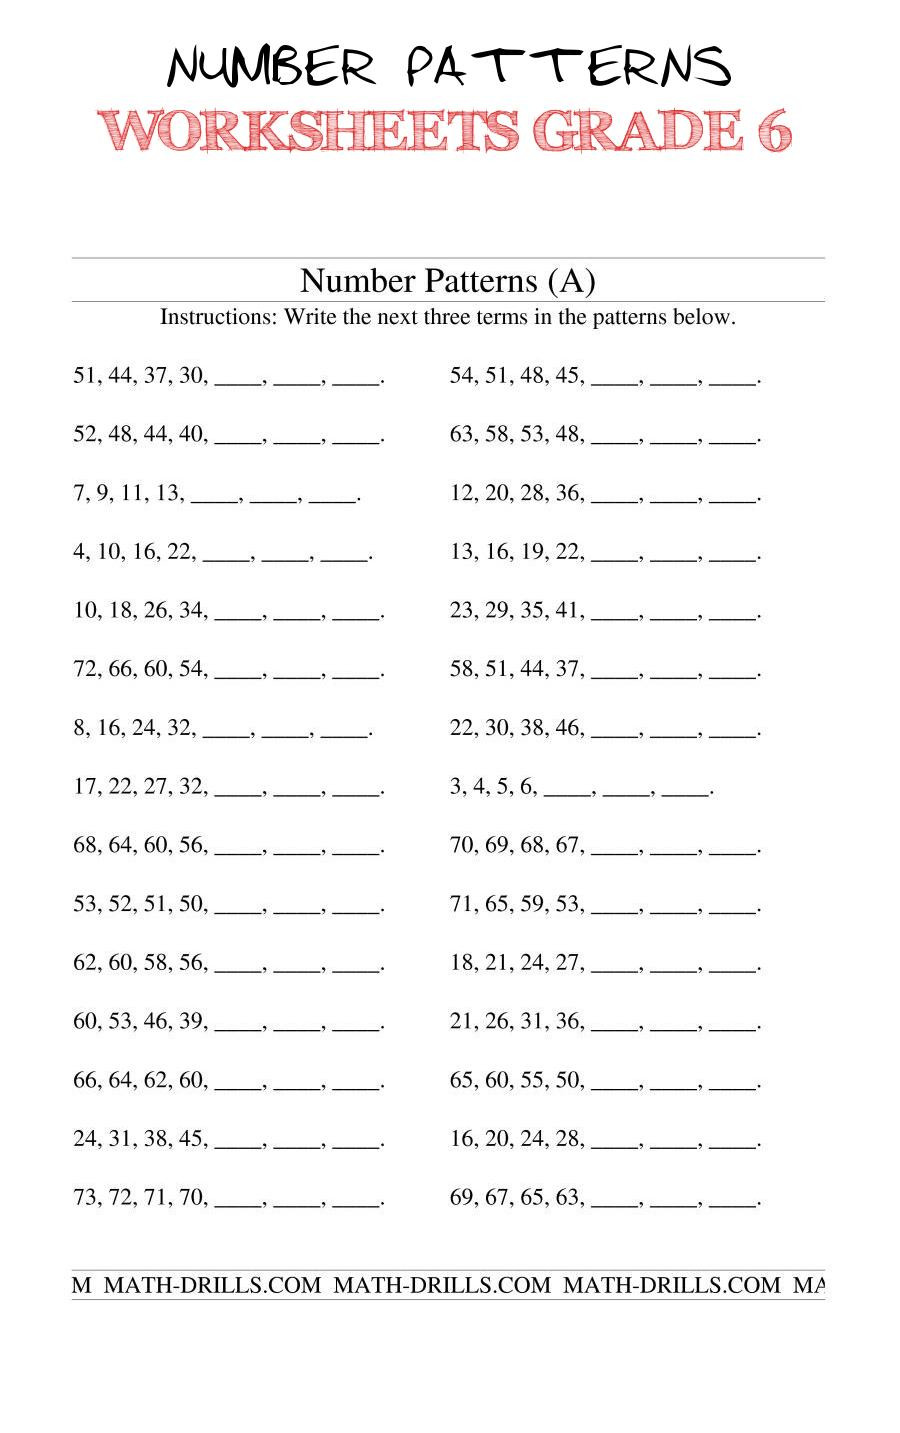 Number Patterns Worksheets Grade 6 Number Patterns Worksheets Grade 6 the Growing and Shrinking